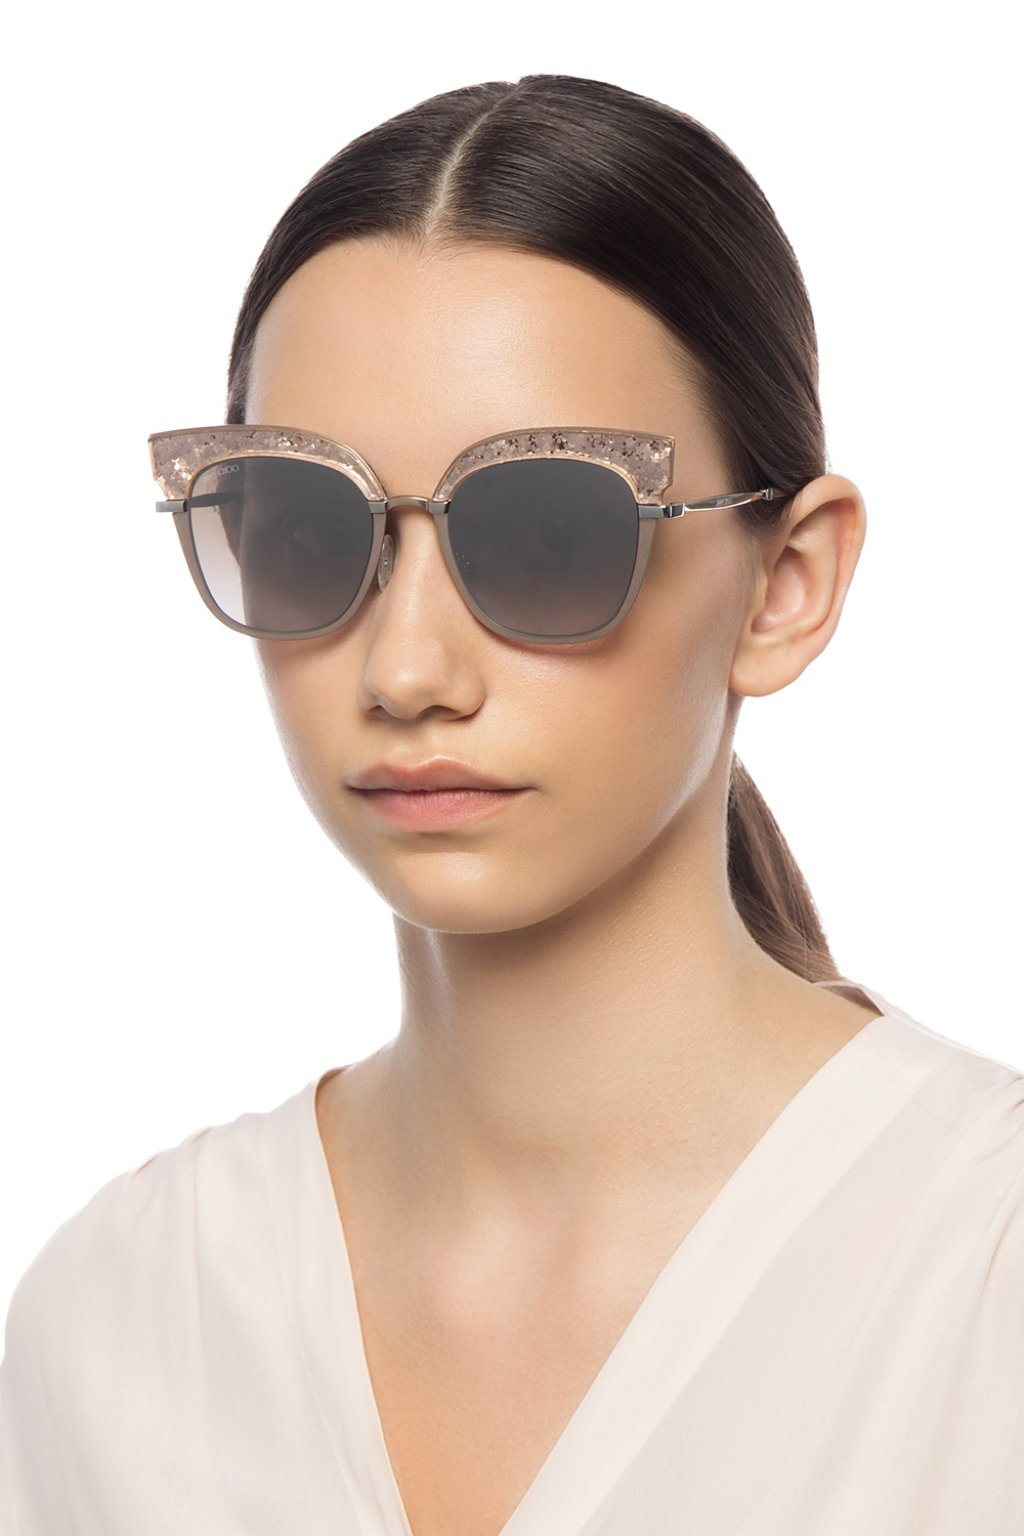 Jimmy Choo 'Rosy' sunglasses